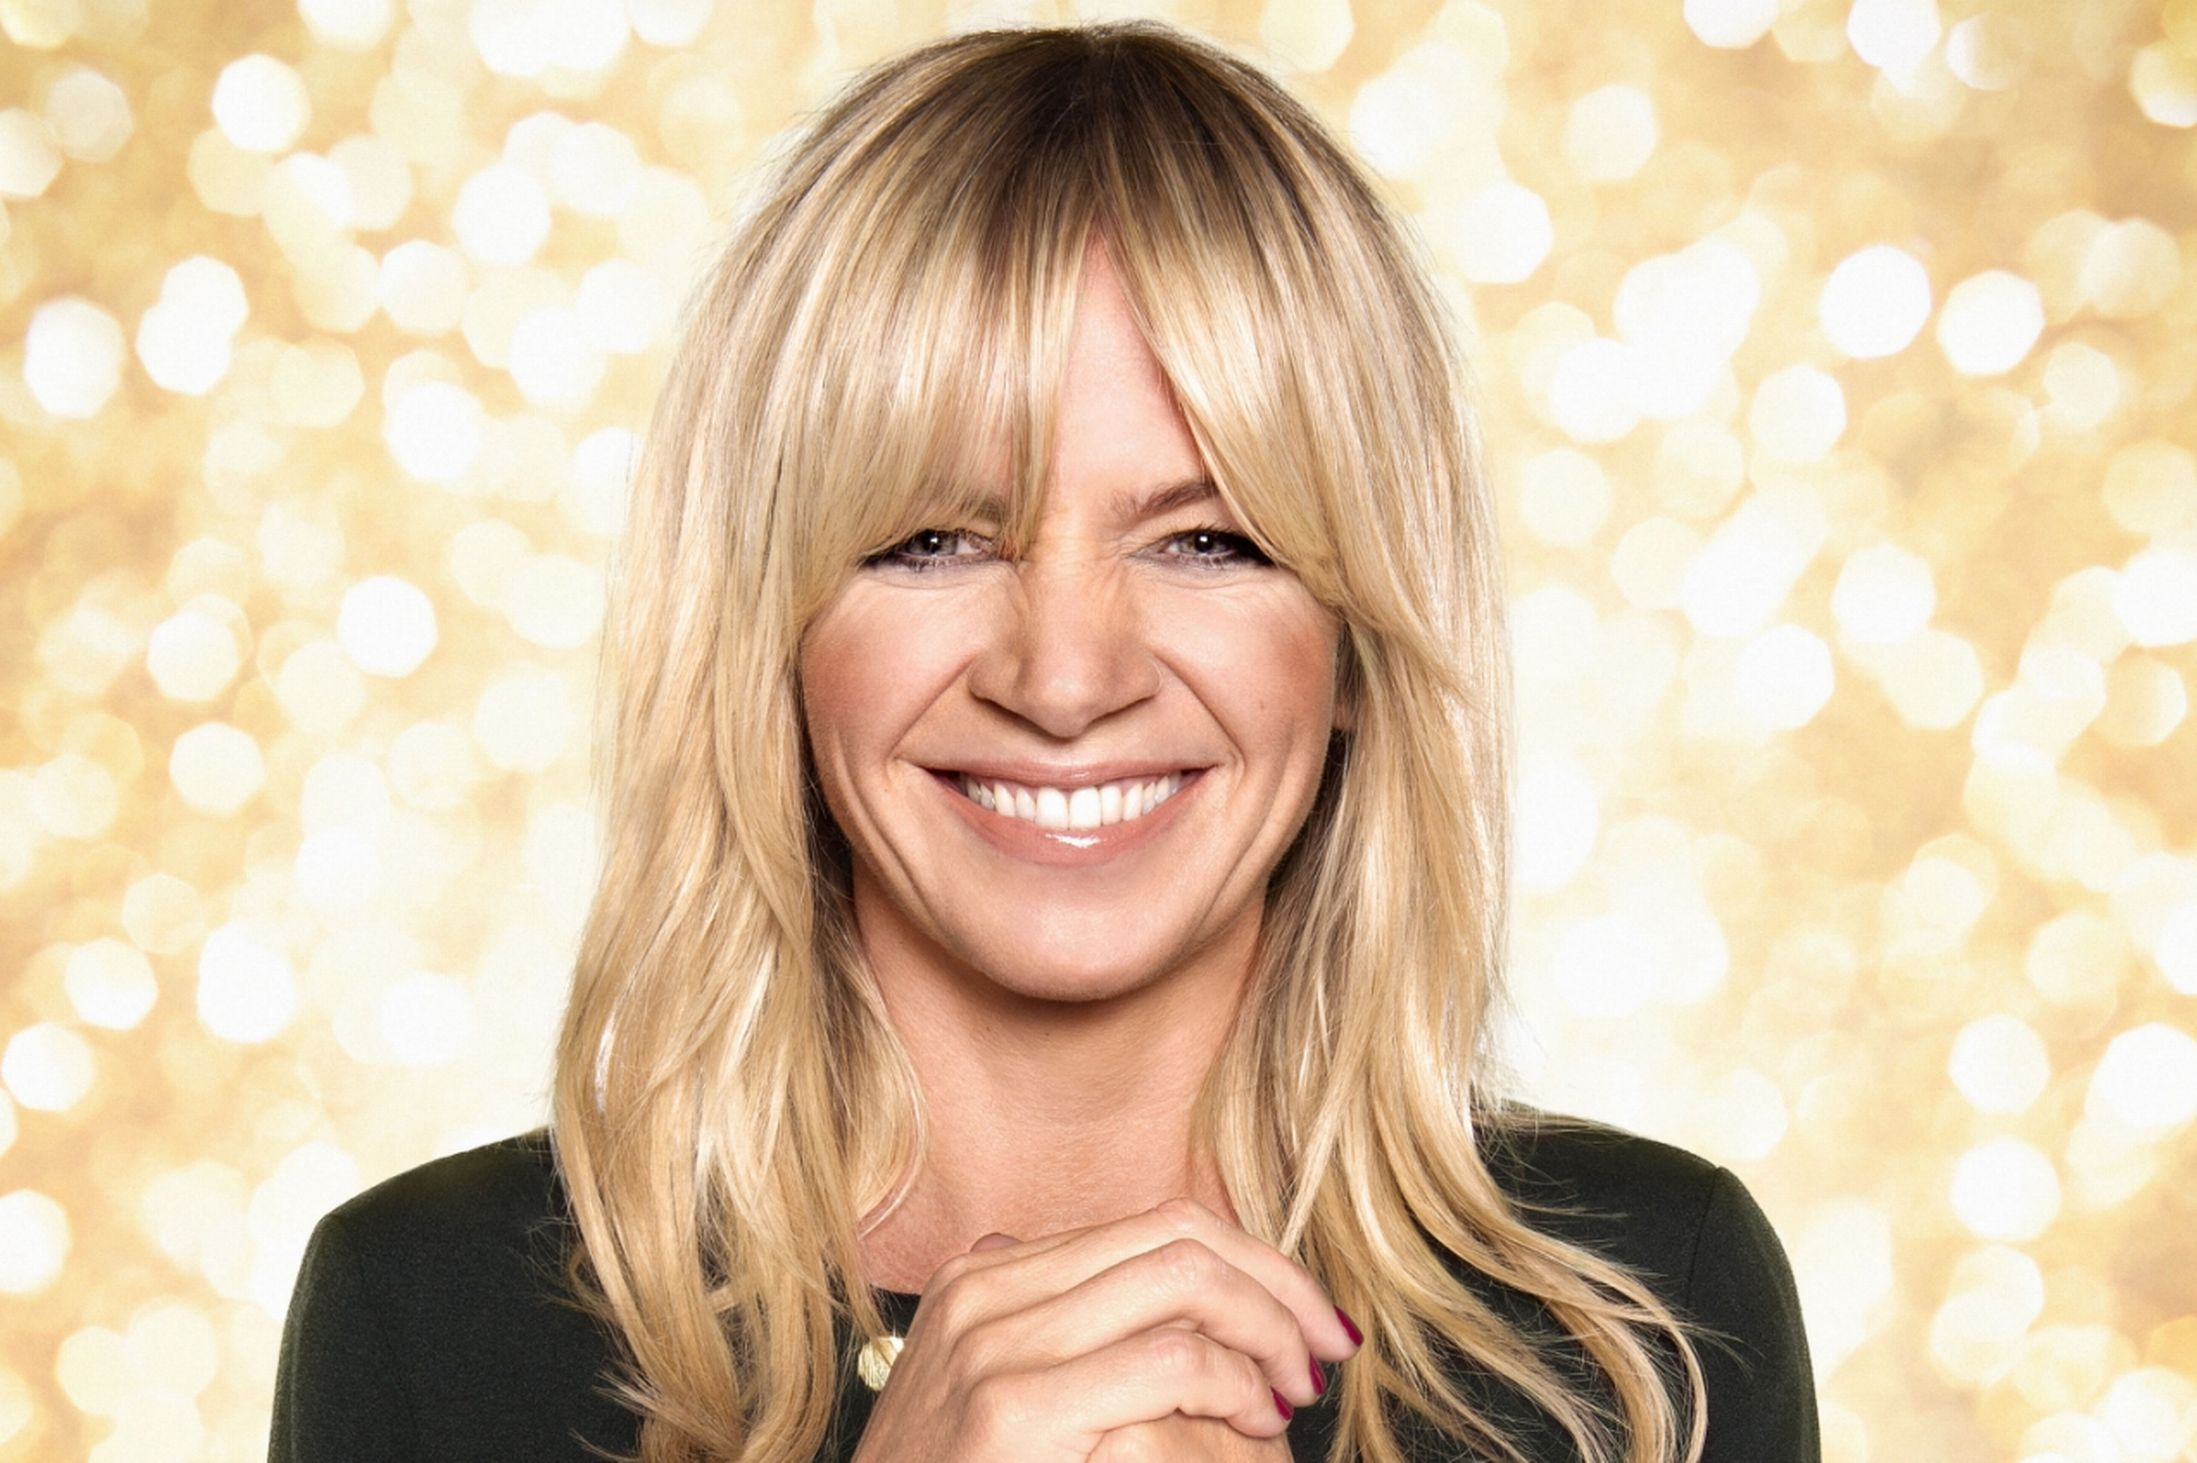 strictly come dancing: zoe ball replaces claudia winkleman on